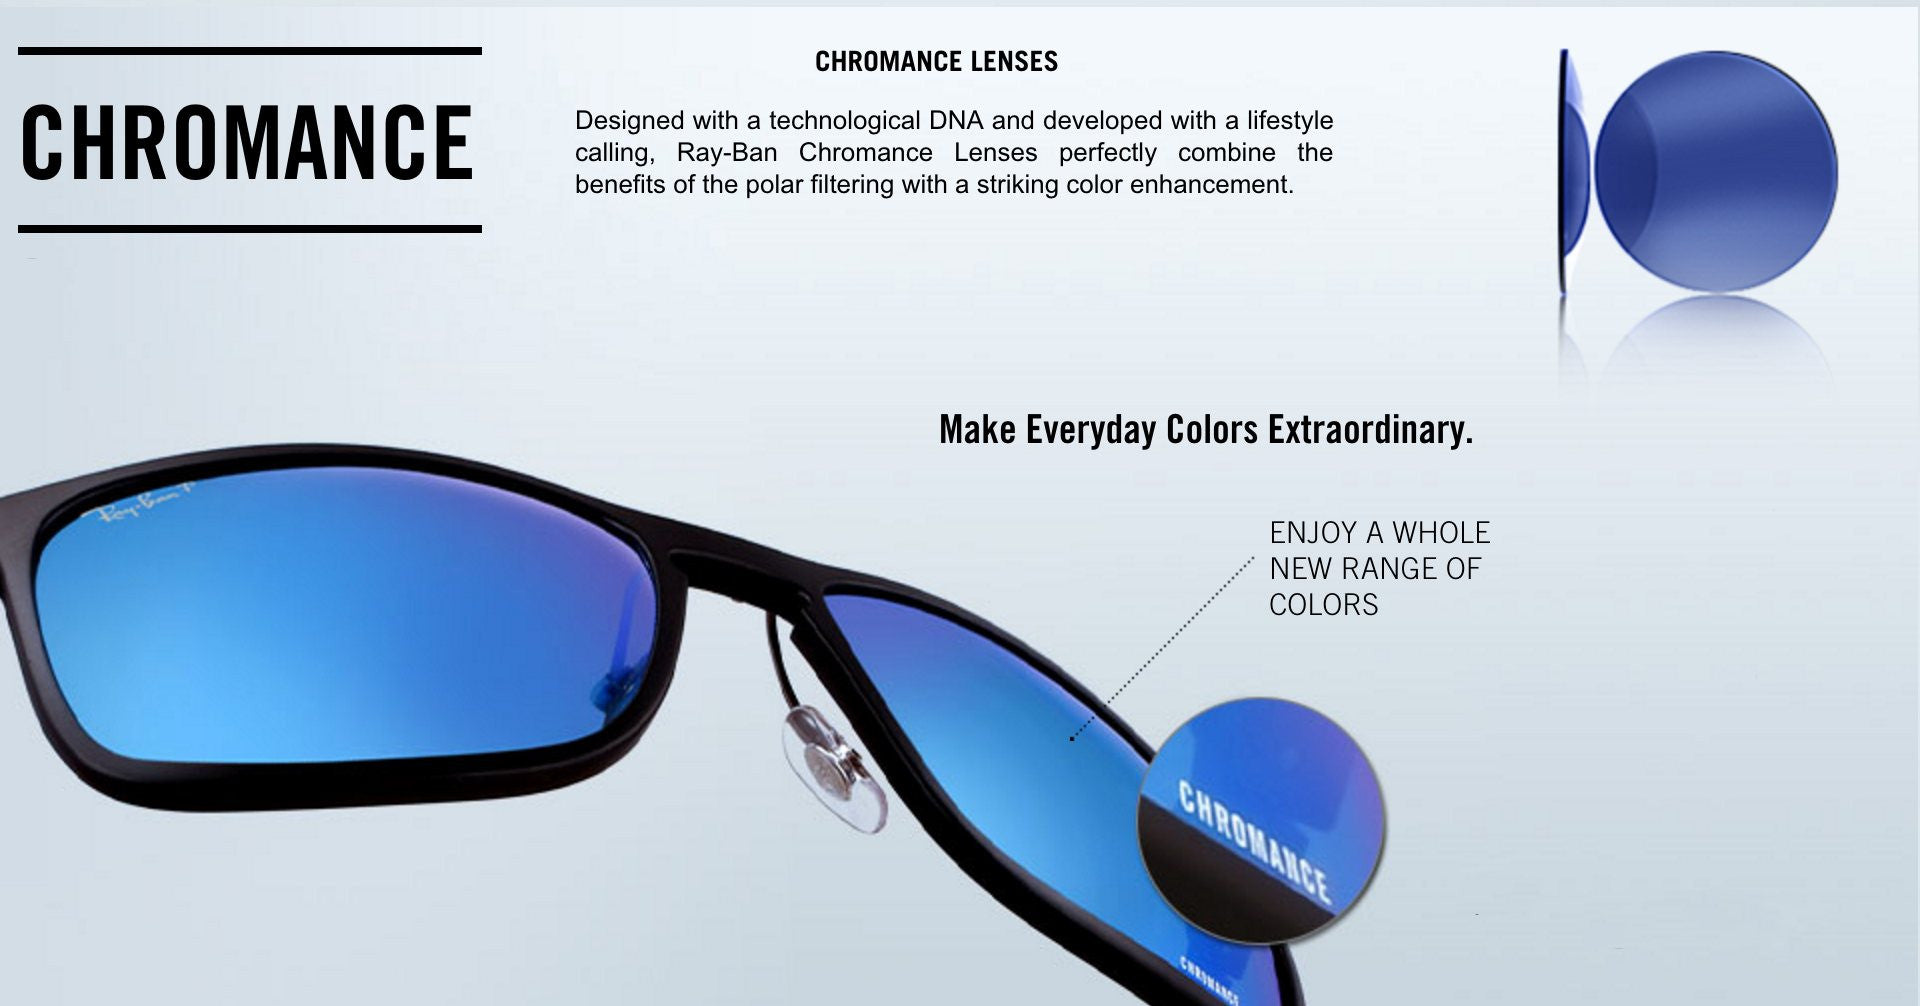 Ray-Ban Chromance Lenses